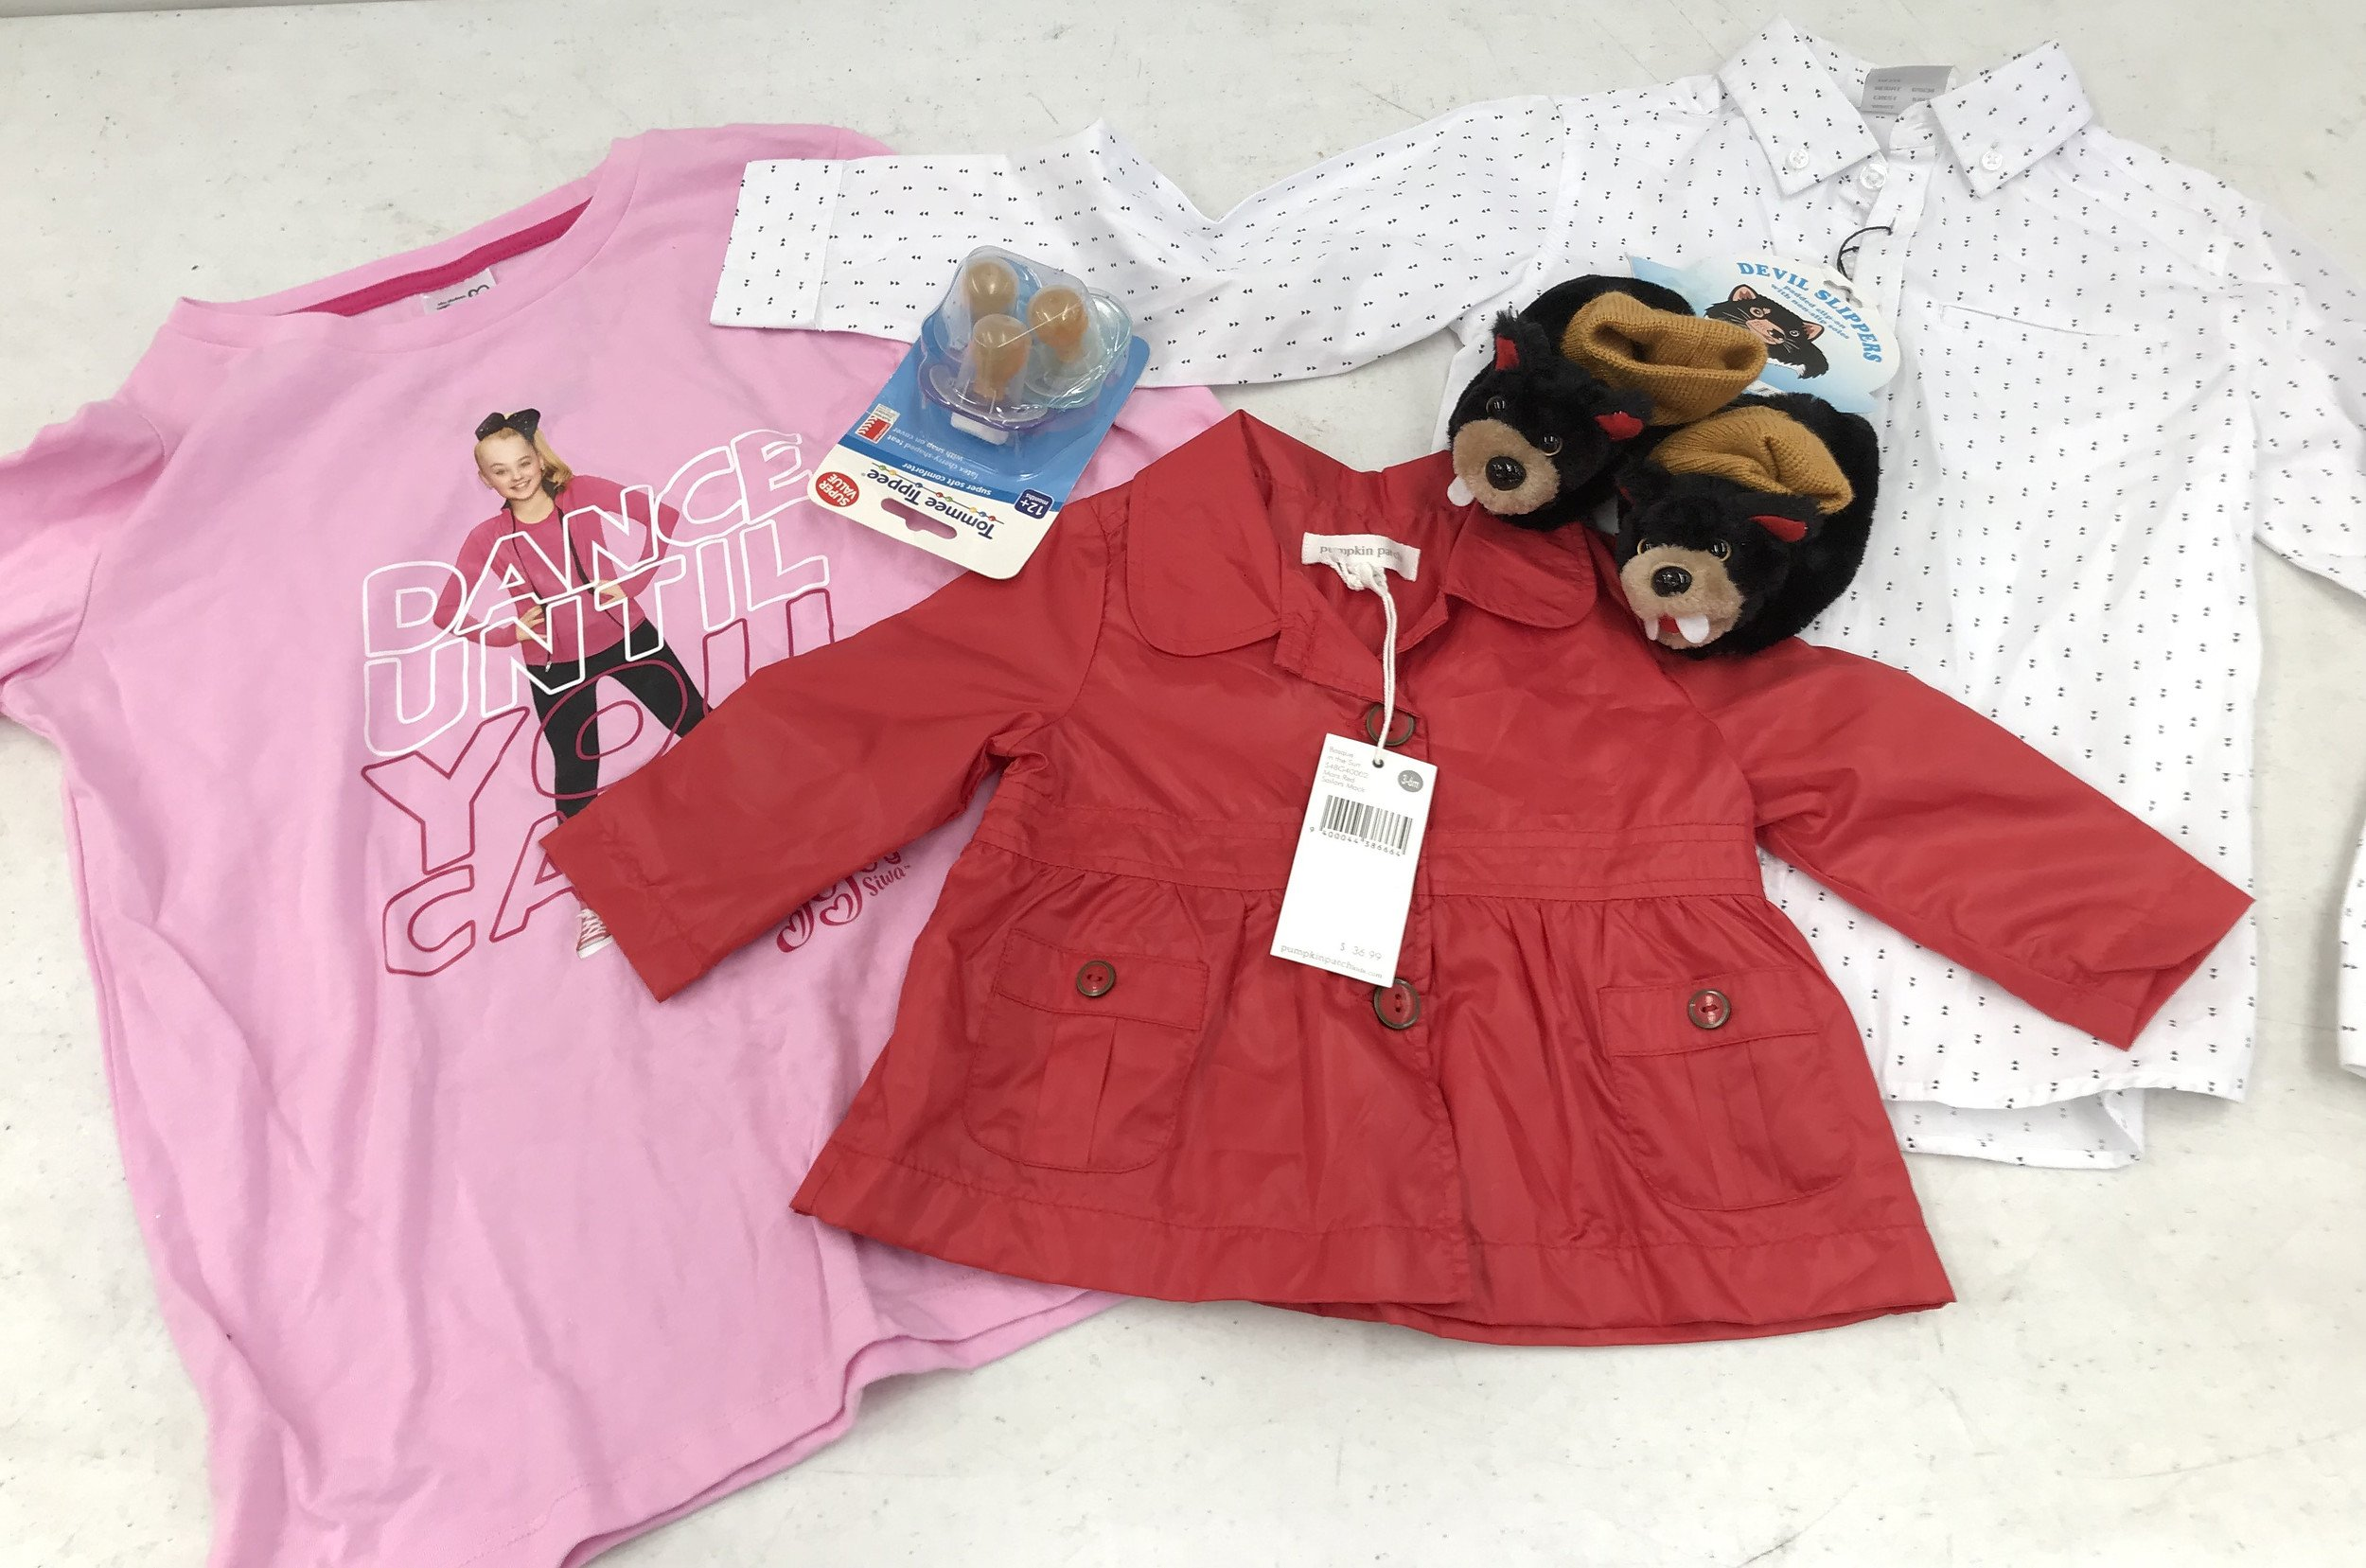 a12883869280e Bulk Lot of Brand New Kids Clothing & Accessories - RRP Over $600